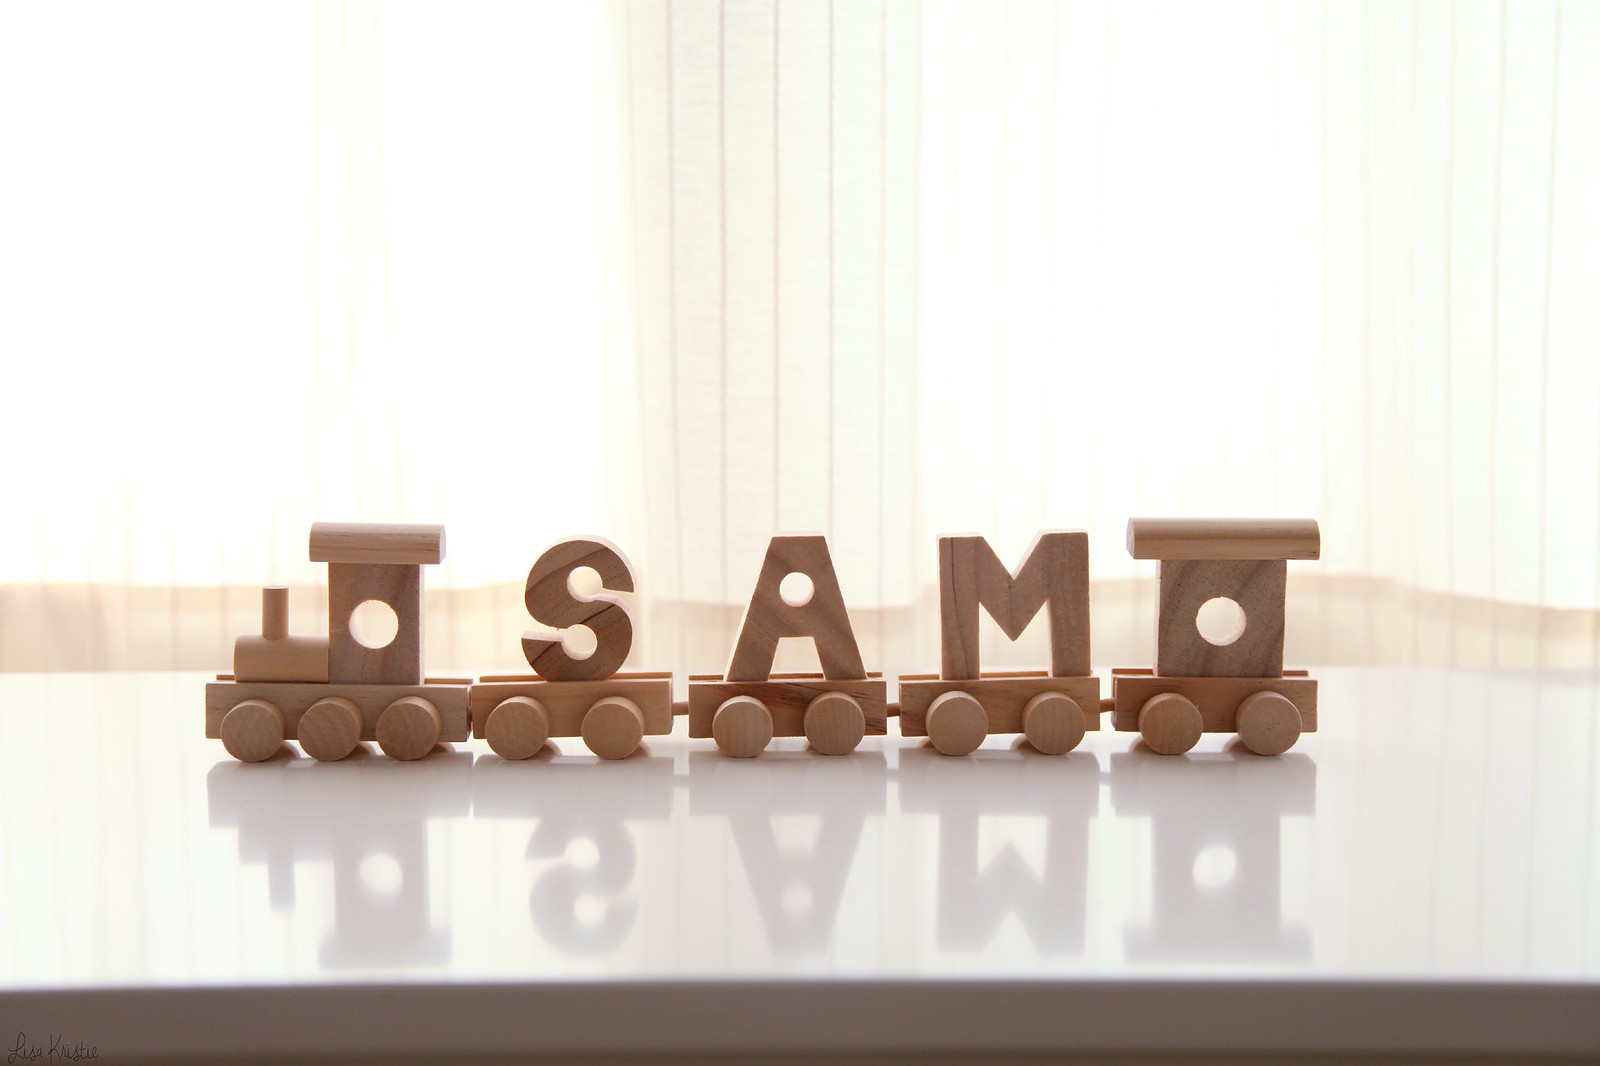 sam baby name wooden train block letters spelling toy wood